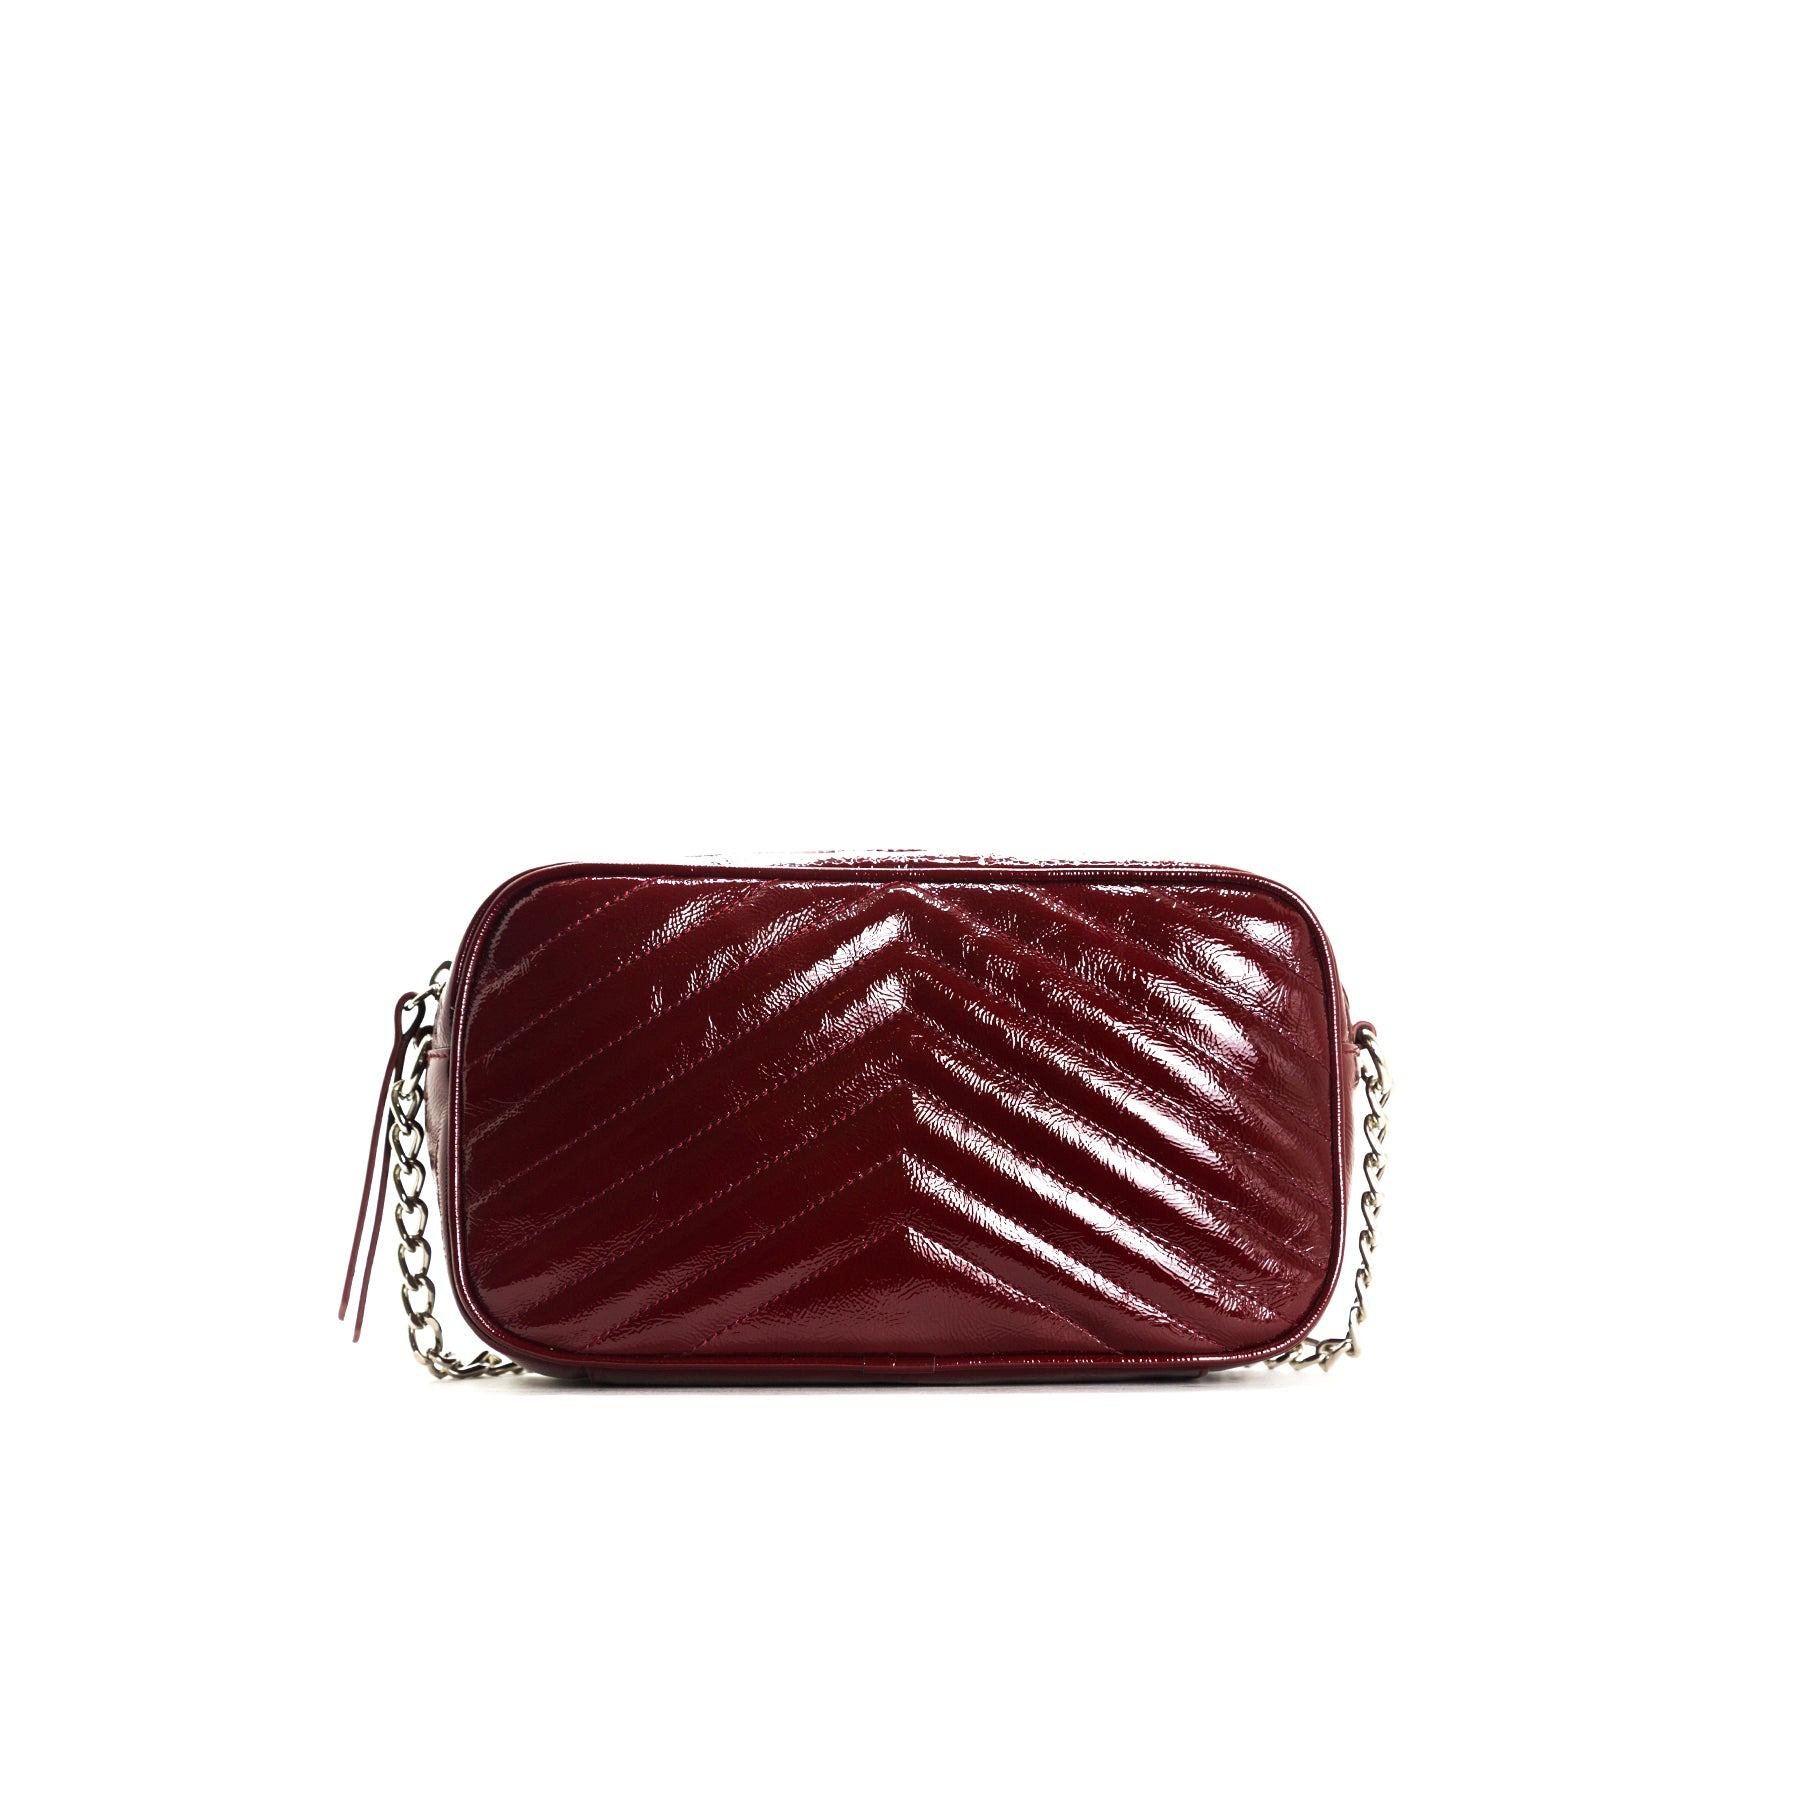 Bijoux Bordo Naplack Shoulder Bags